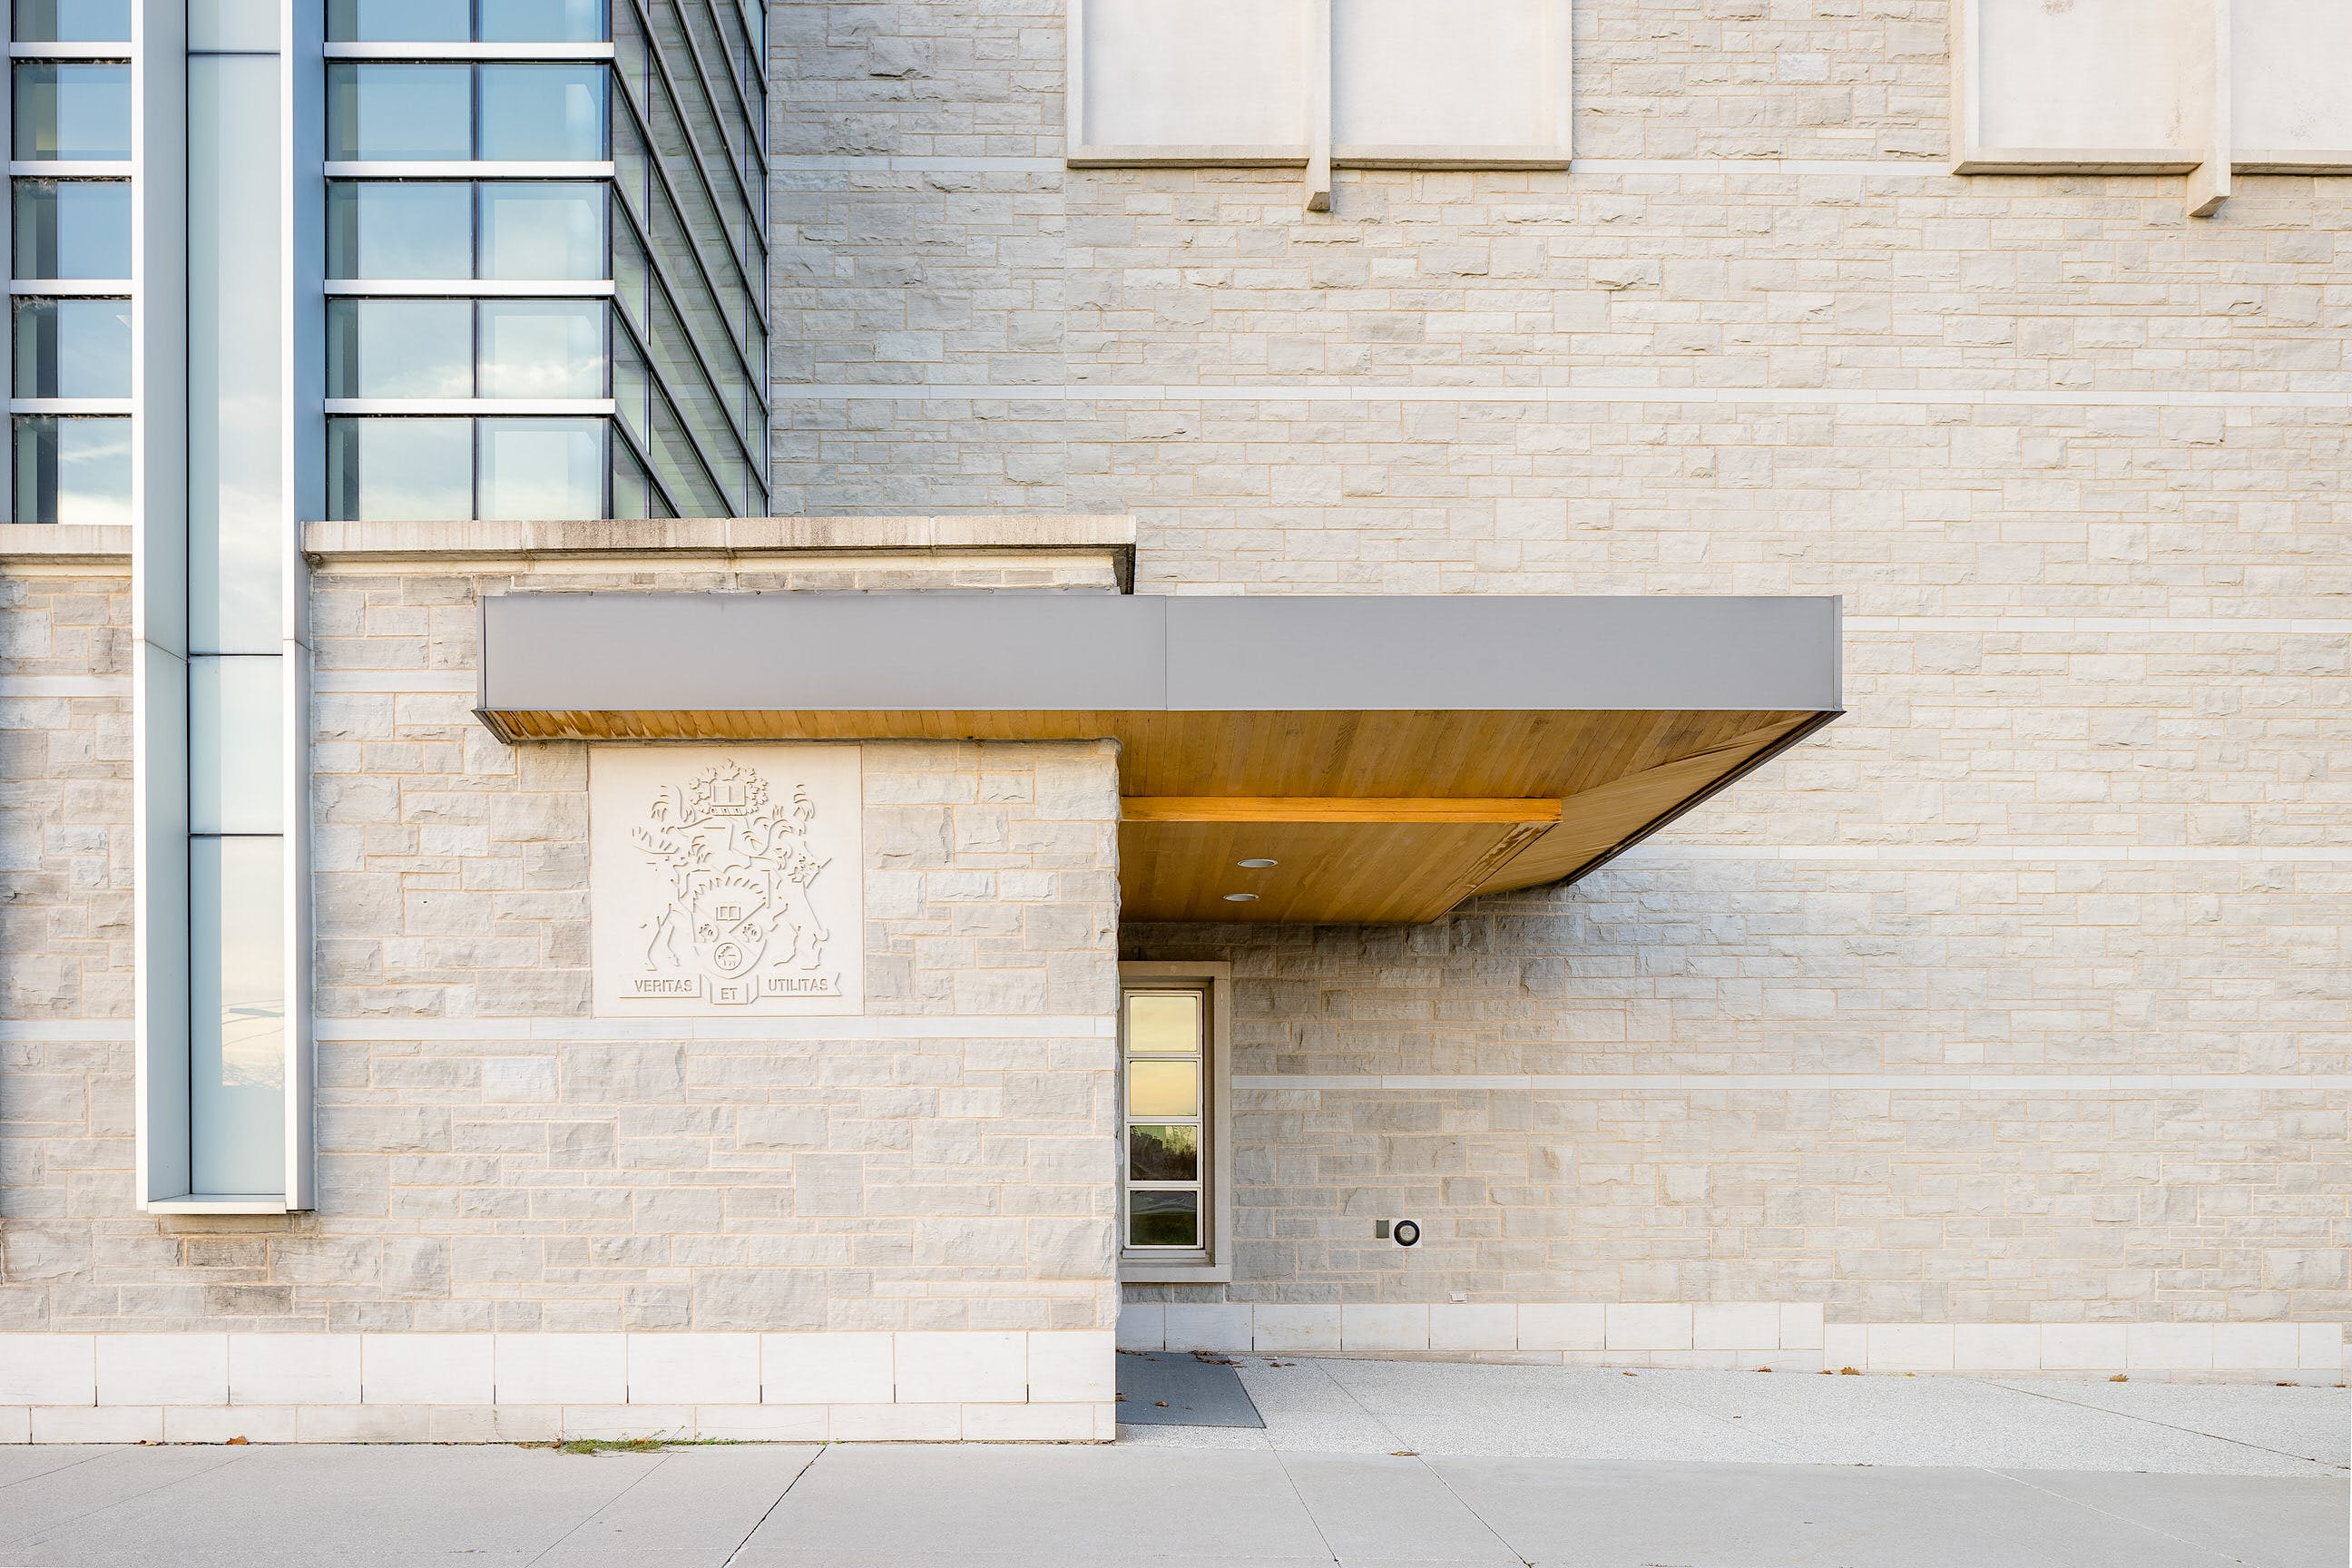 UWO - Arthur and Sonia Labatt Health Sciences Centre